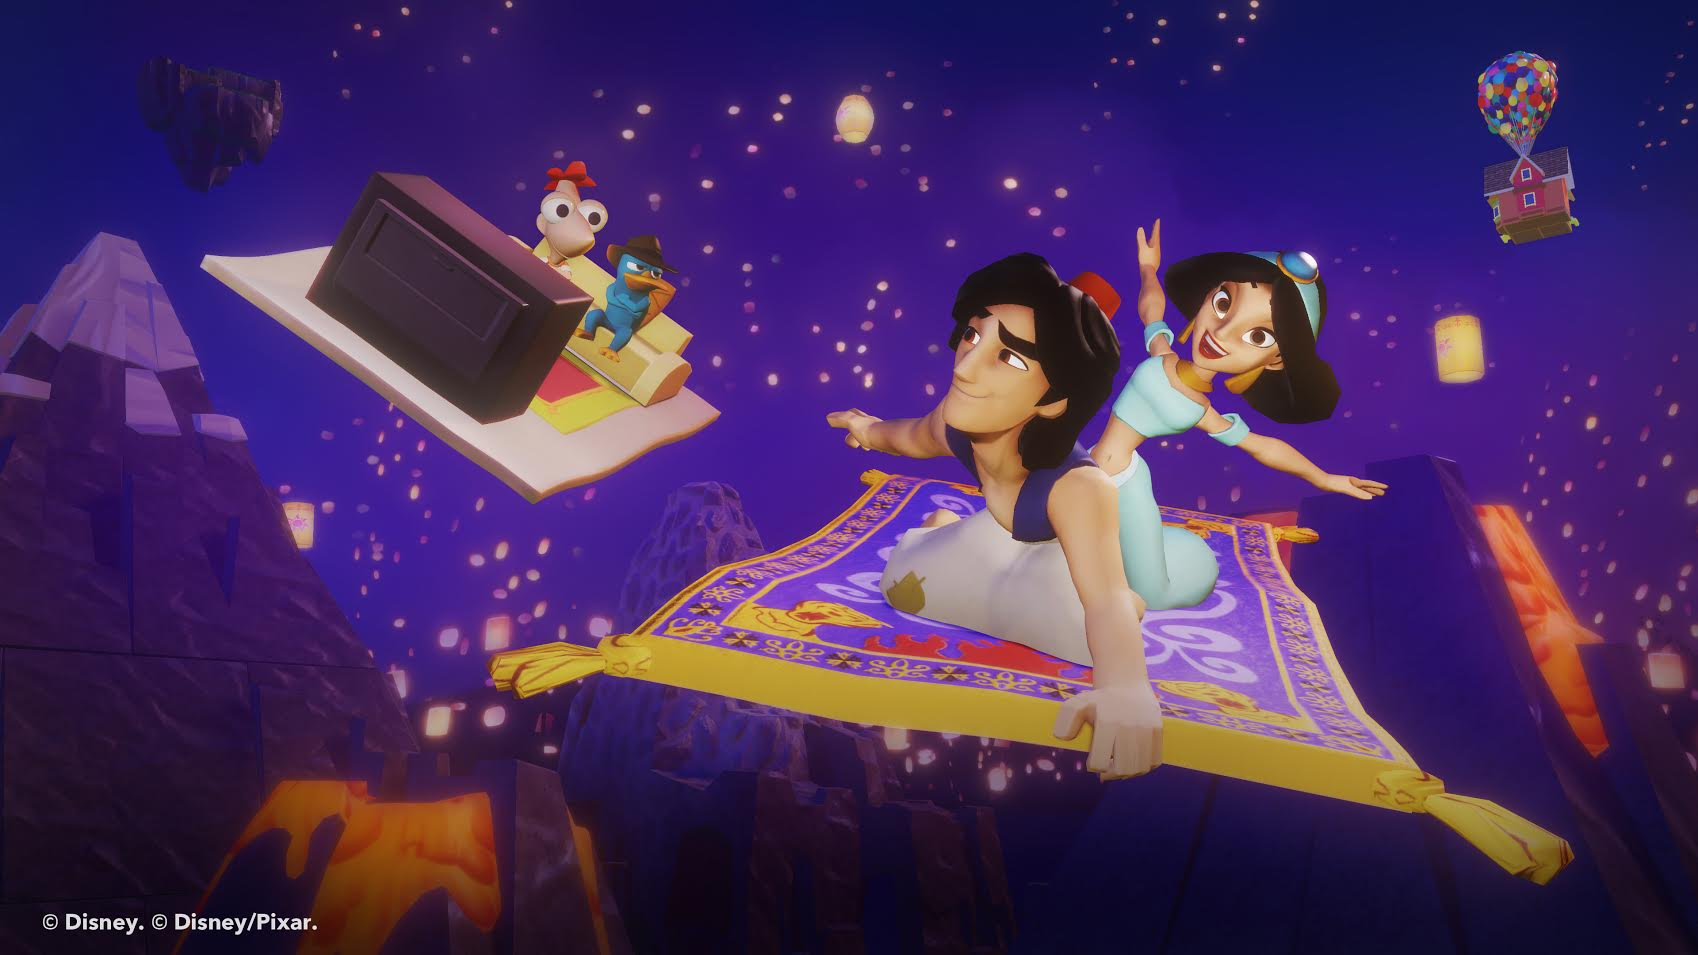 Aladdin and Jasmine bring a whole new world to Disney Infinity